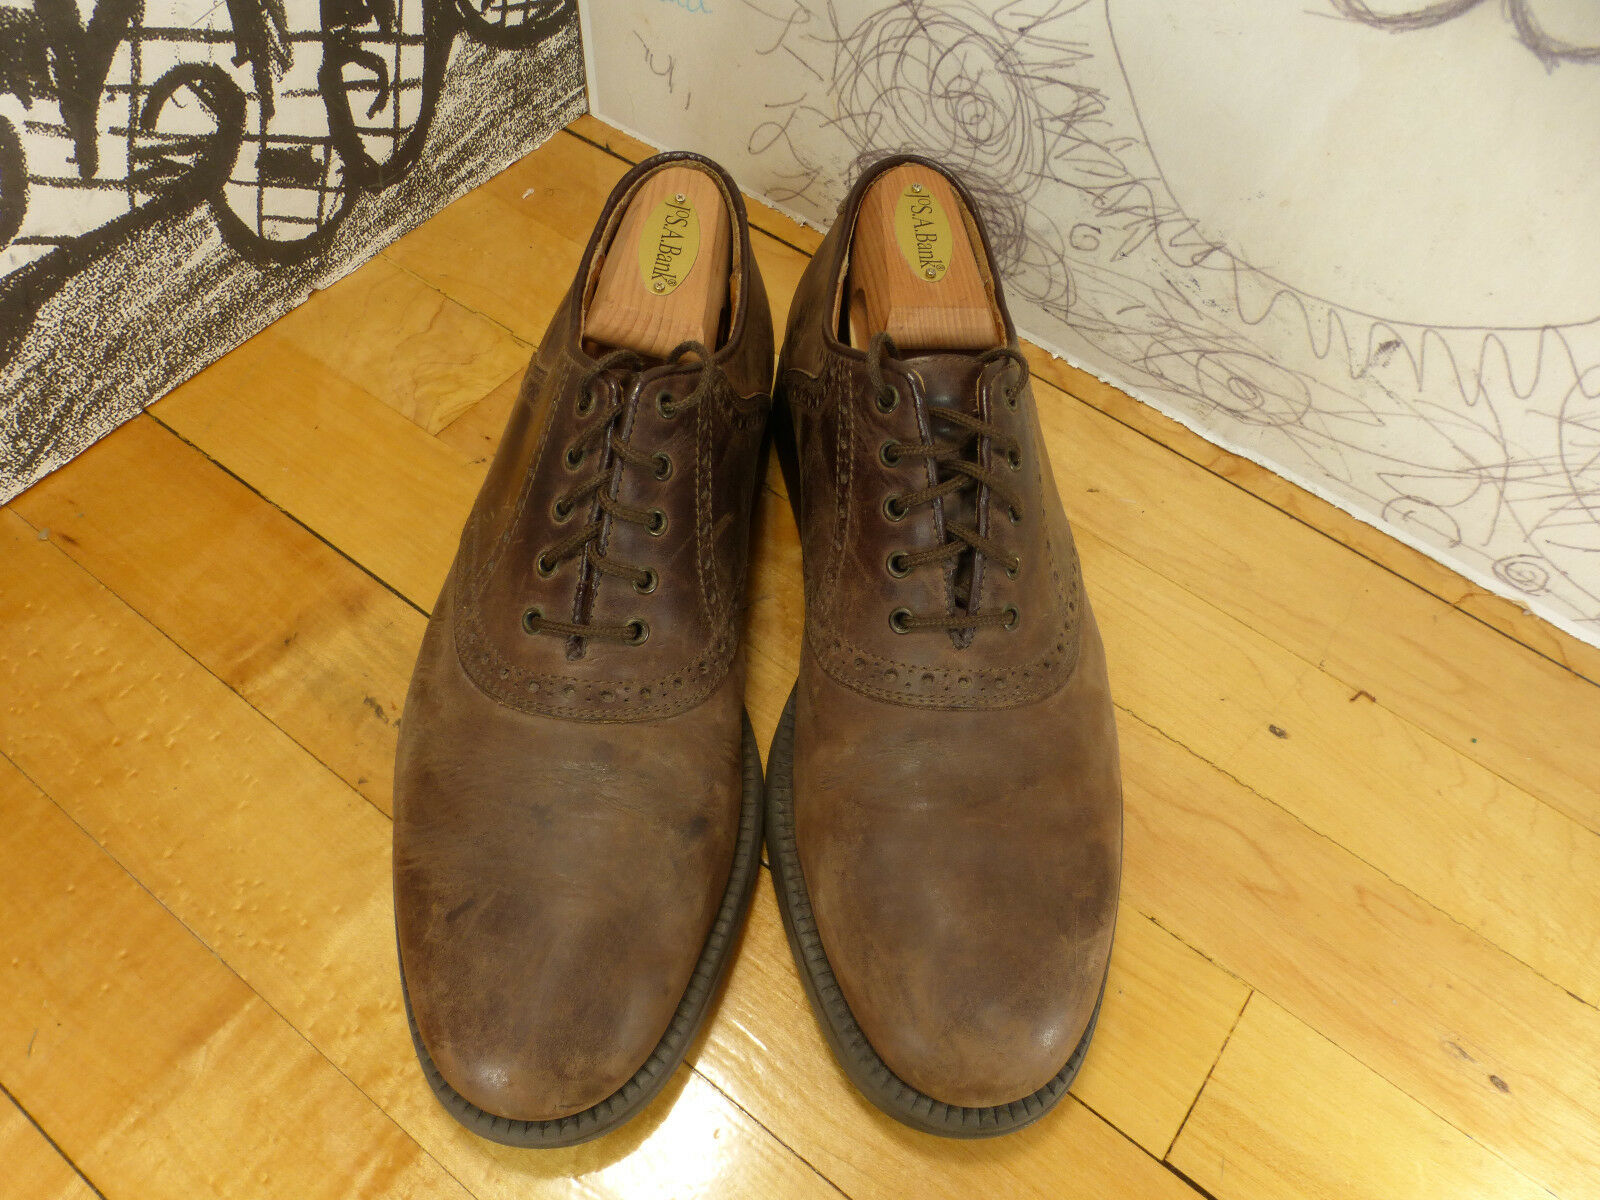 Johnston Murphy Waterpreoof Leather Saddle Oxfords 20-4960 9.5M Made in